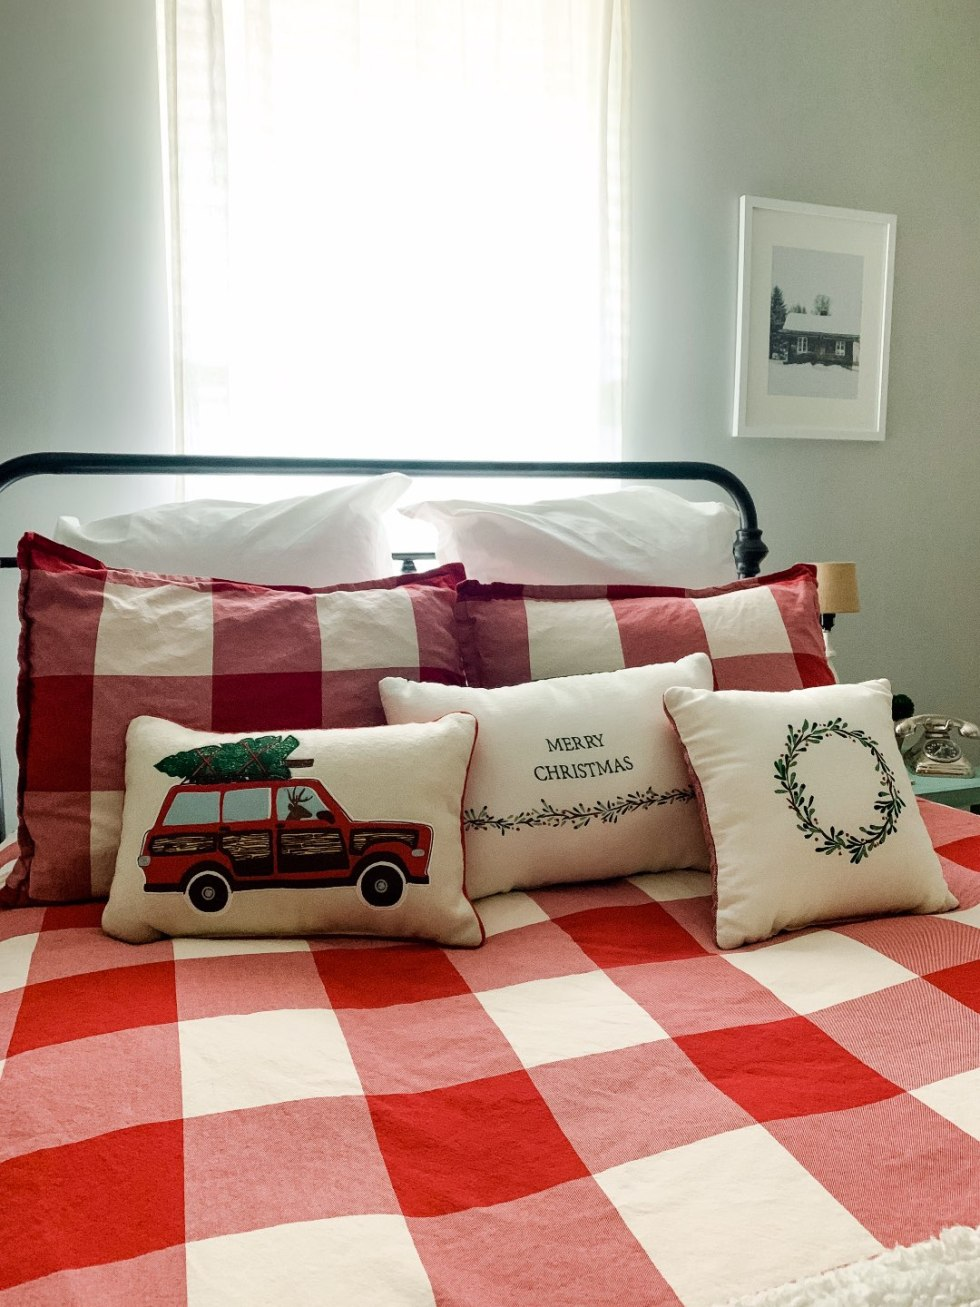 Holiday Home Decor Tour - I'm Fixin' To - @mbg0112 | Holiday Home Decor Tour by popular North Carolina life and style blog, I'm Fixin' To: image of a guest bedroom bed with a Pottery Barn Bryce Buffalo Check Cotton Duvet Cover & Shams, Target Inspire Q Tilden Standard Metal Bed, Etsy Christmas Wall Art, Pottery Barn Cozy Pom Pom Throw, and Amazon Golden State Art.